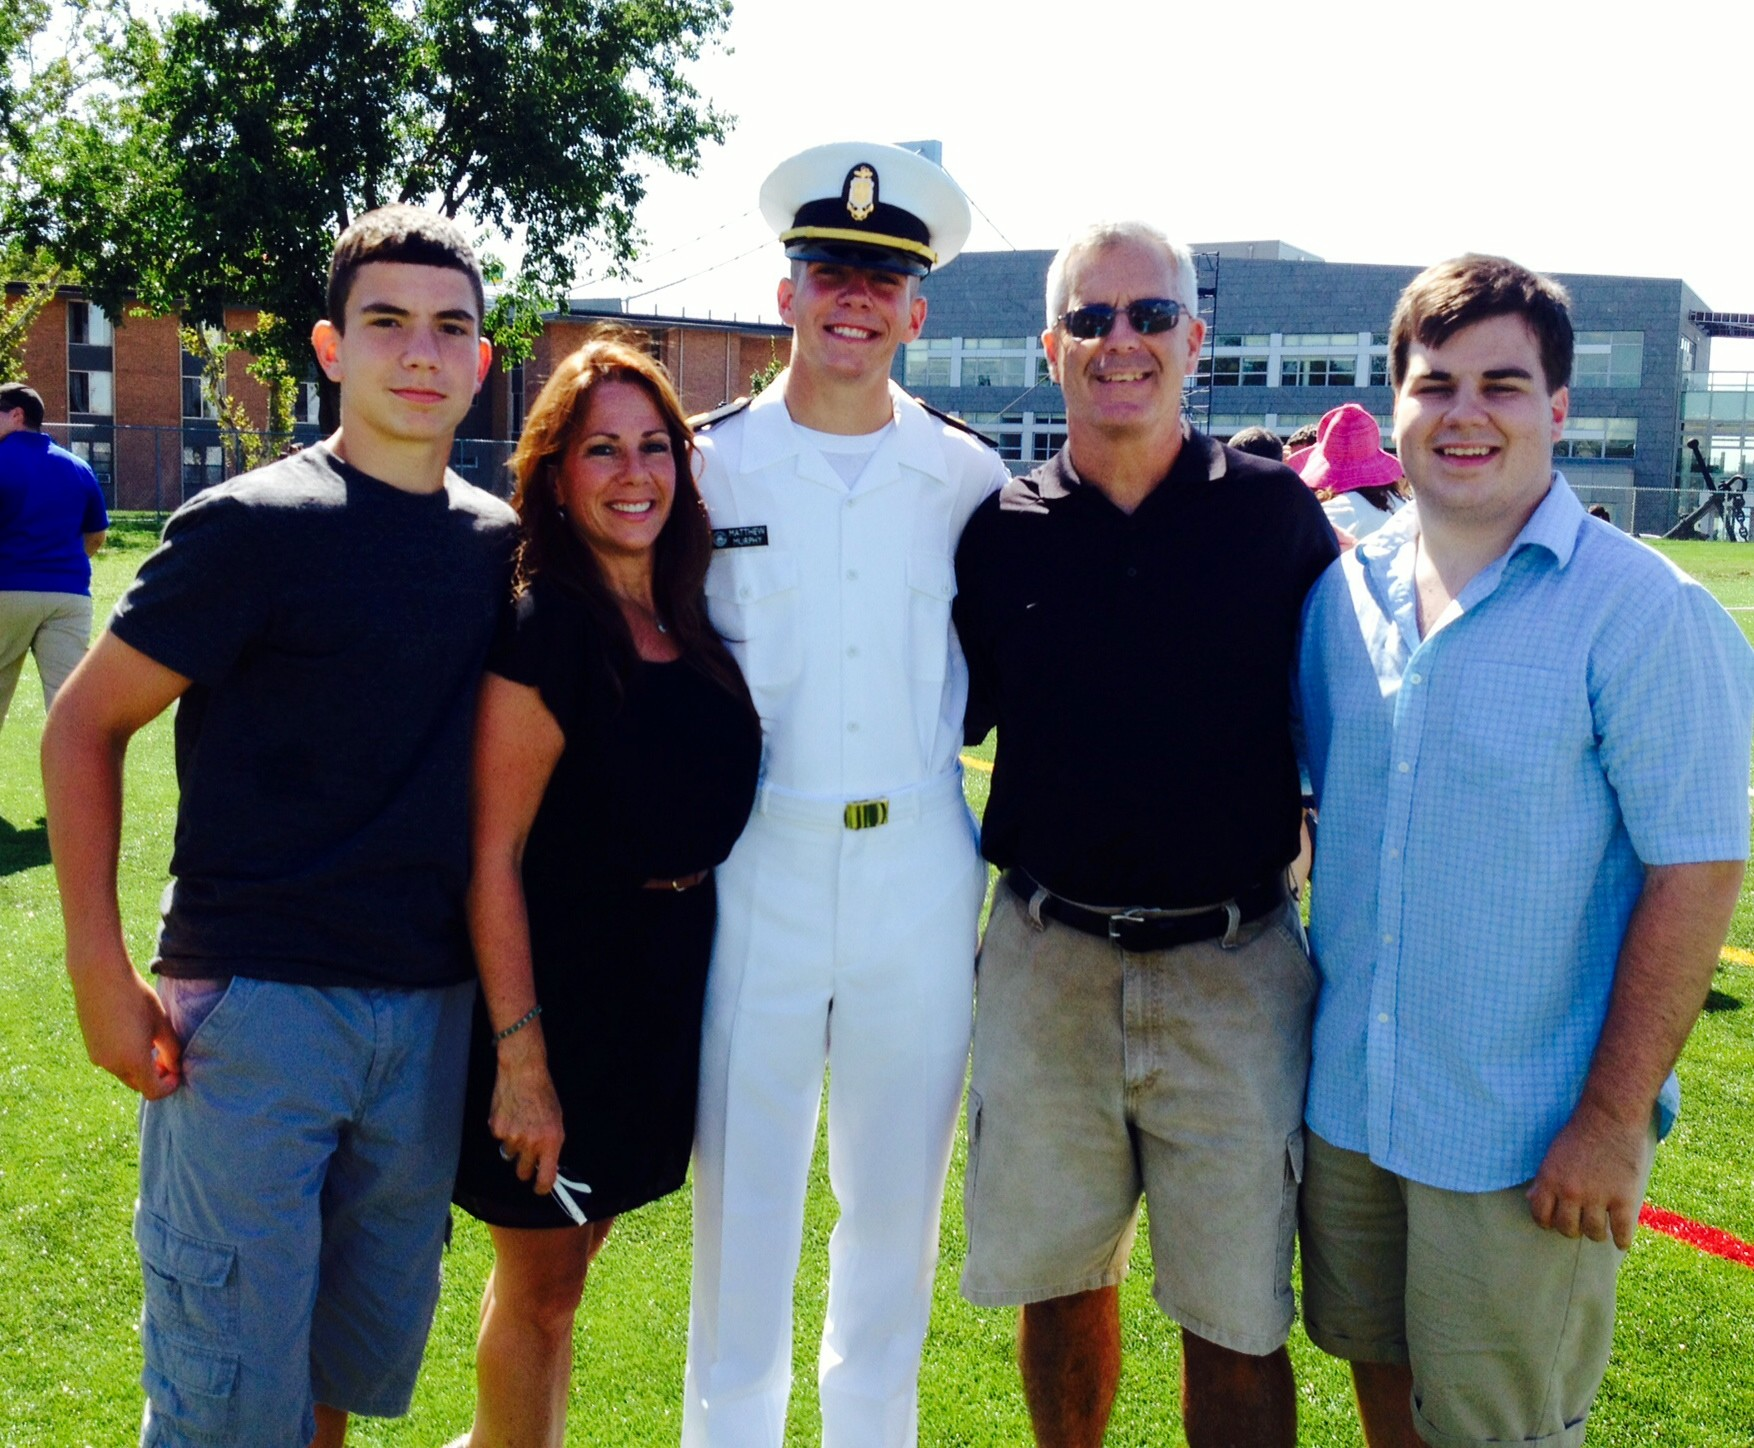 Judge Terence Murphy, second from right, will be grand marshal of Seaford's Homecoming parade on Saturday. He was joined by his family, from left, son Kevin, wife Tracy, and sons Matthew and Patrick.